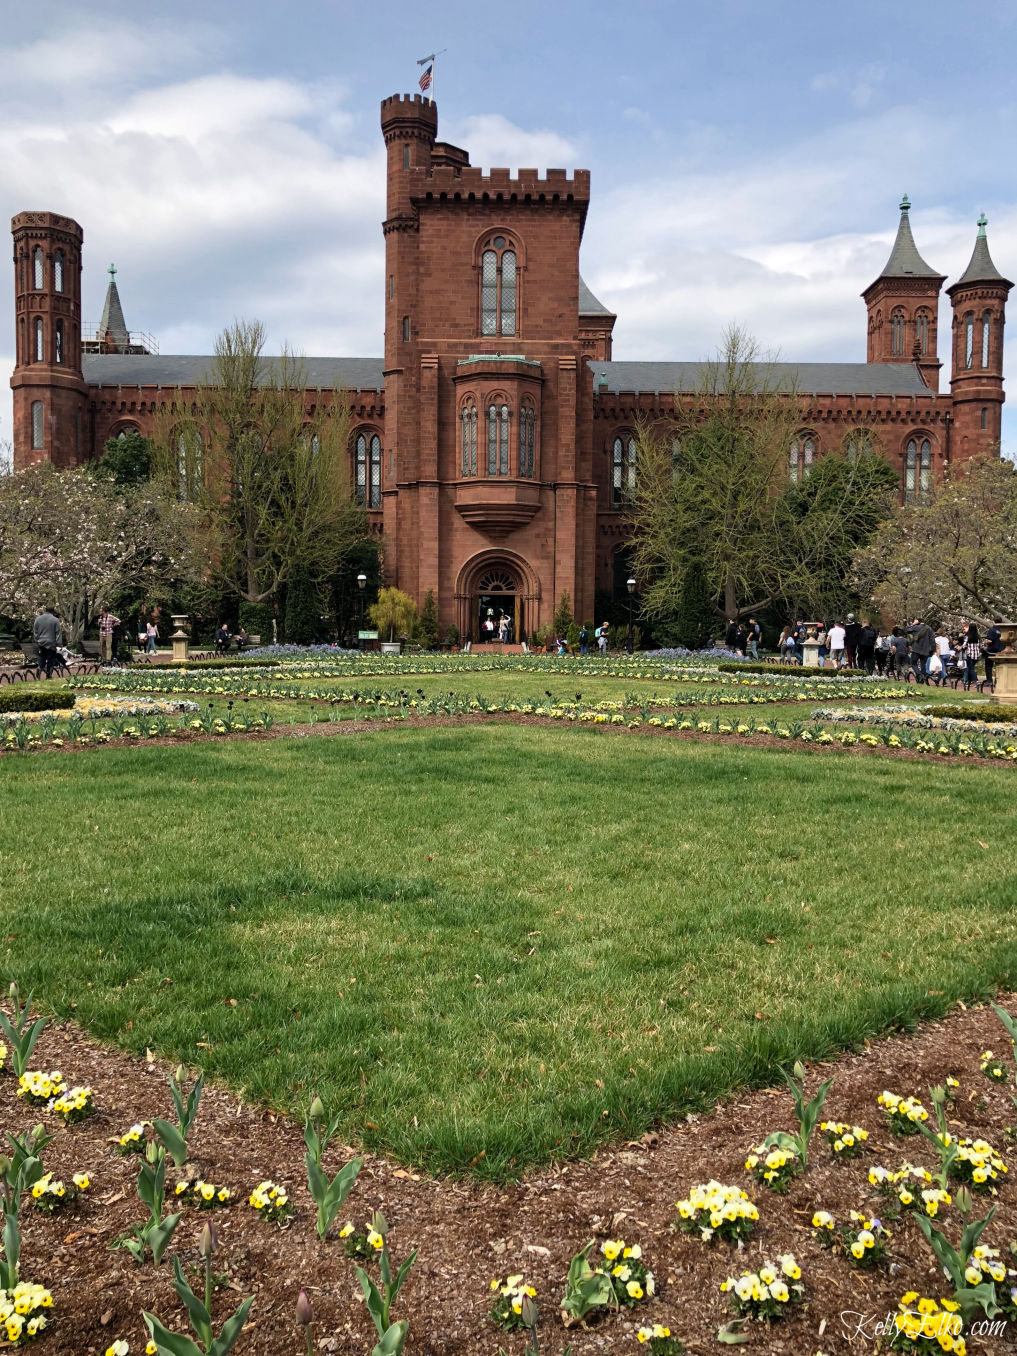 Weekend in Washington DC - there are 14 free museums in the National Mall! kellyelko.com #travel #travelblogger #washingtondc #dc #vacation #familytravel #getaway #escape #smithsonian #museum #gardens